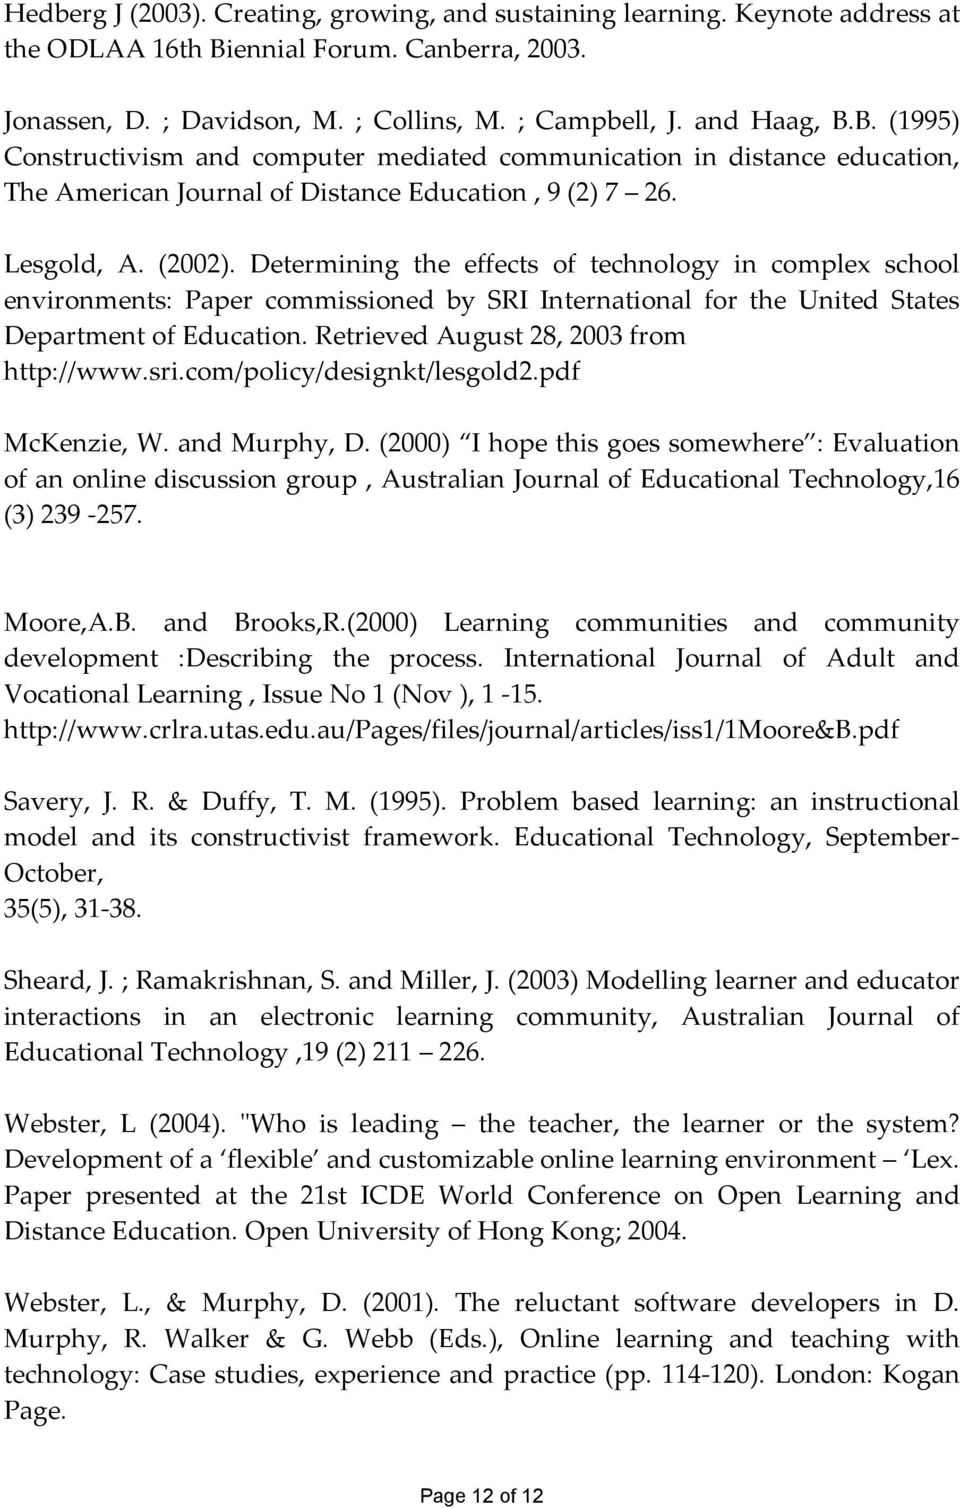 B. (1995) Constructivism and computer mediated communication in distance education, The American Journal of Distance Education, 9 (2) 7 26. Lesgold, A. (2002).